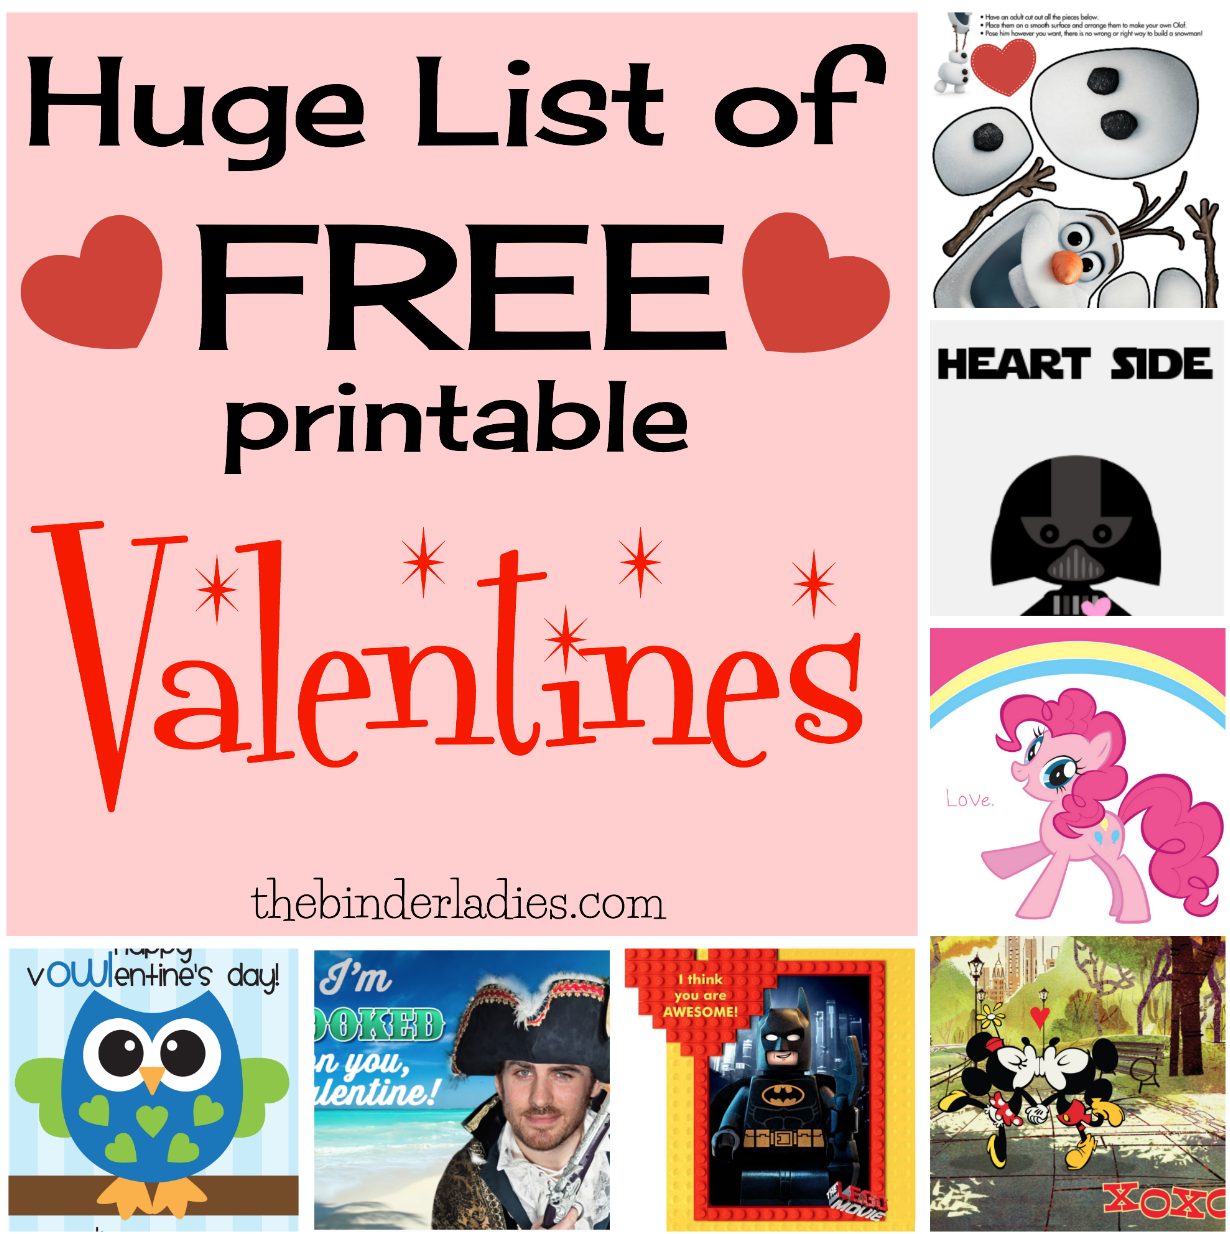 Huge List of FREE Printable Valentines!  Lego, My Little Pony, Disney, Taylor Swift, Frozen + Lots More!